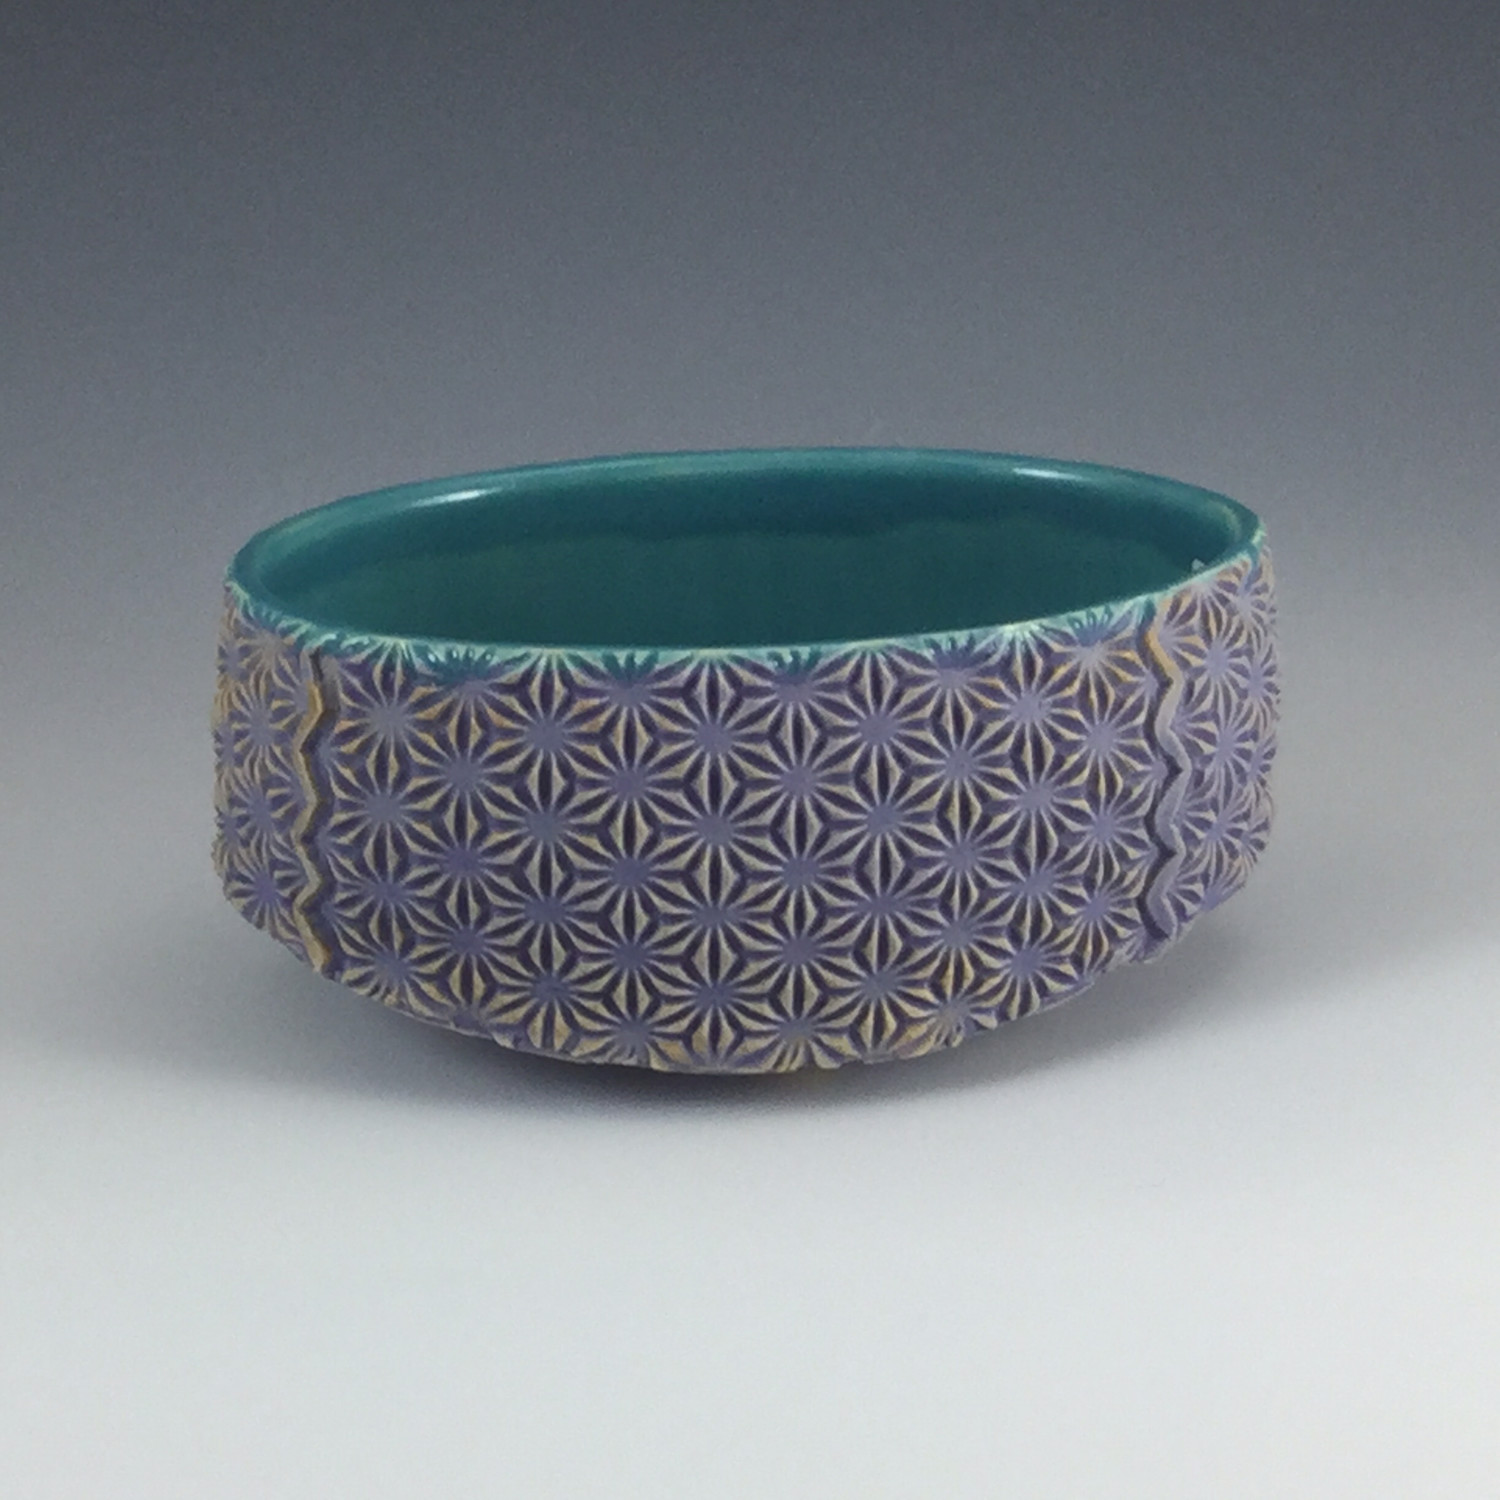 Small Oval Bowl in turquoise & purple